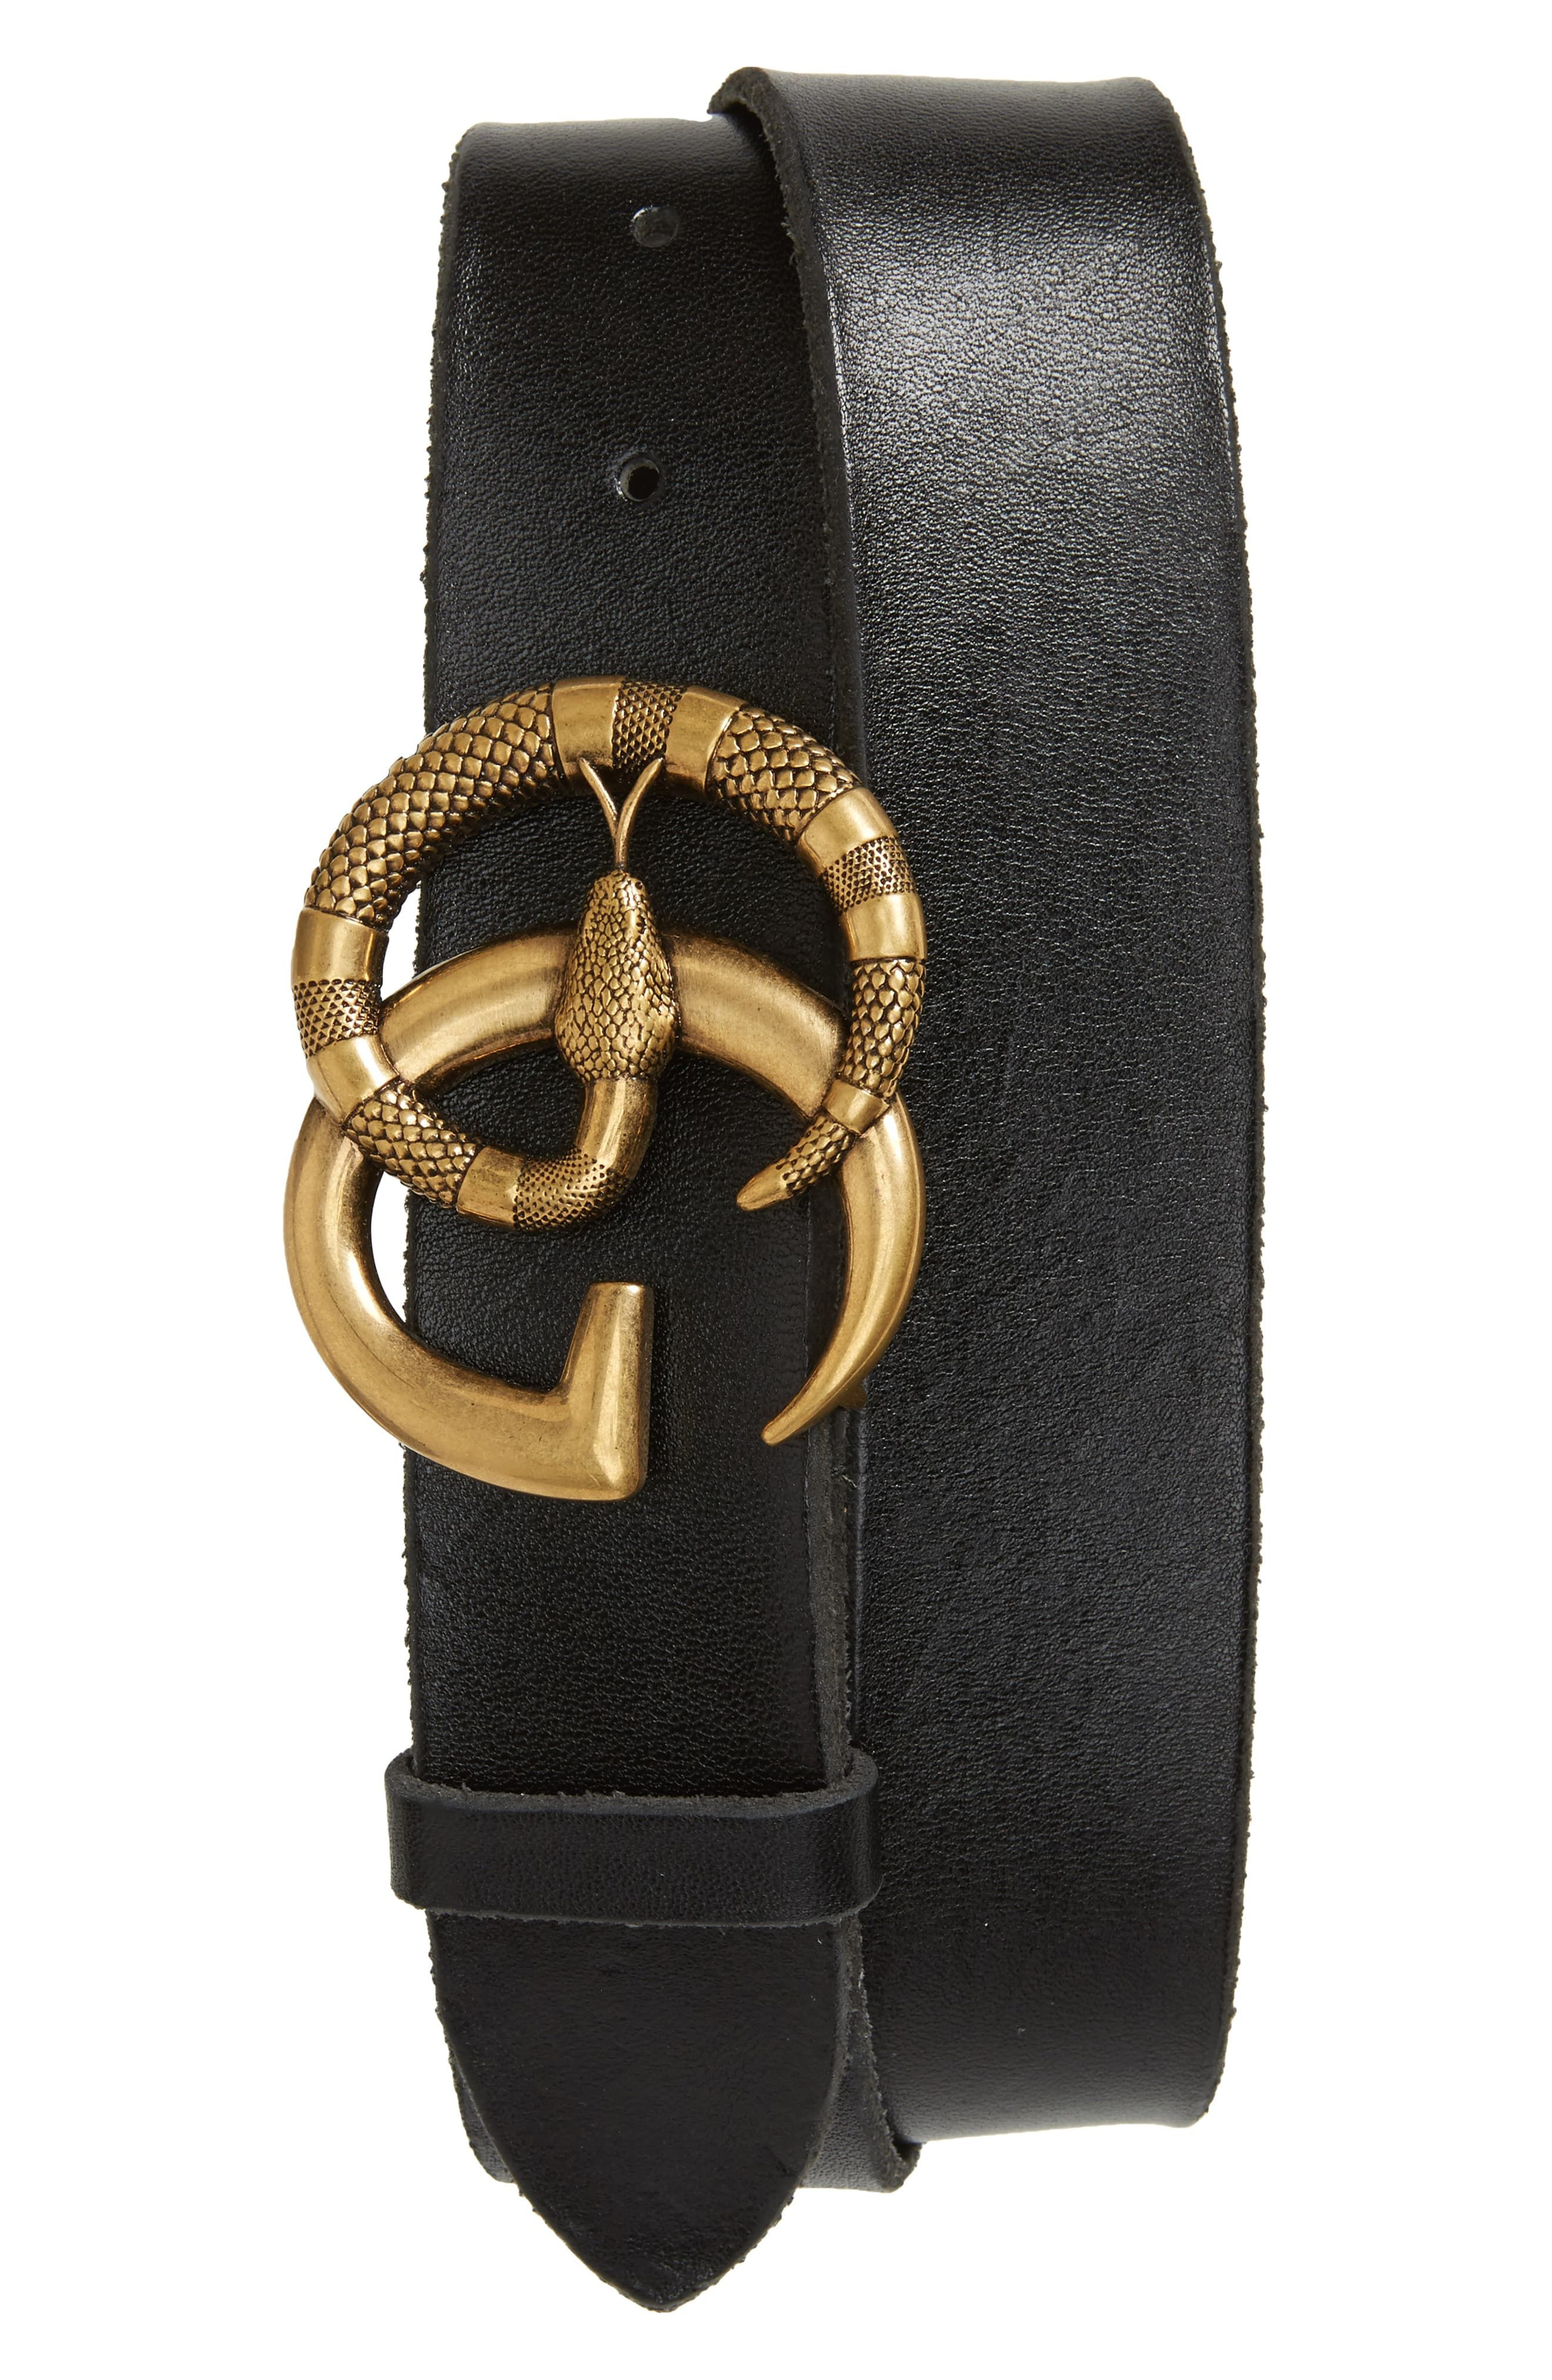 Gucci GG Marmont Snake Buckle Leather Belt Gucci leather